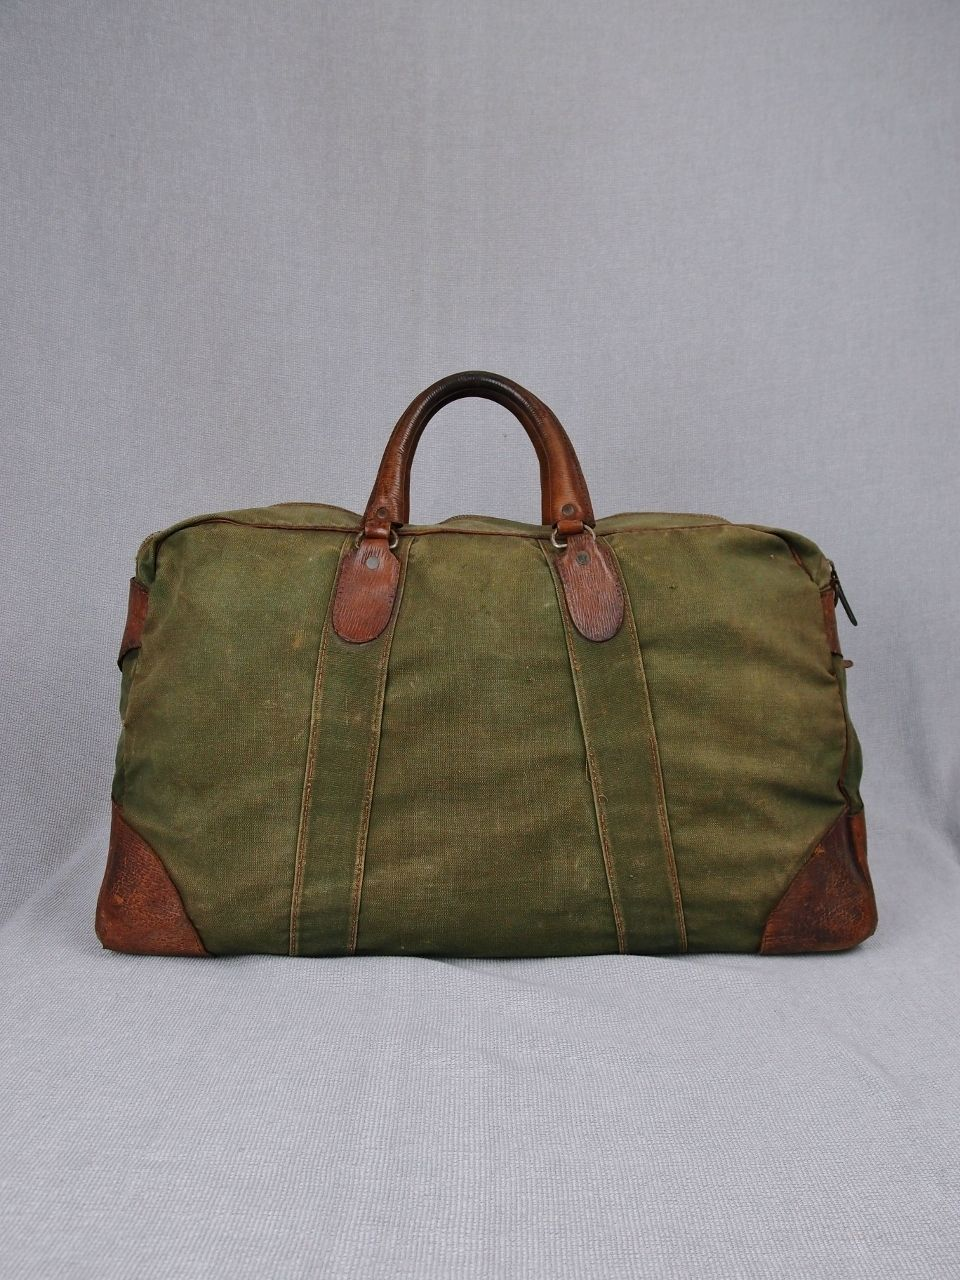 fe747d3f294e46 WW2 Duffle Bag Vtg 1940's Kit Bag WW2 Canvas Holdall 1940s Gym Bag Vtg  Weekend | eBay